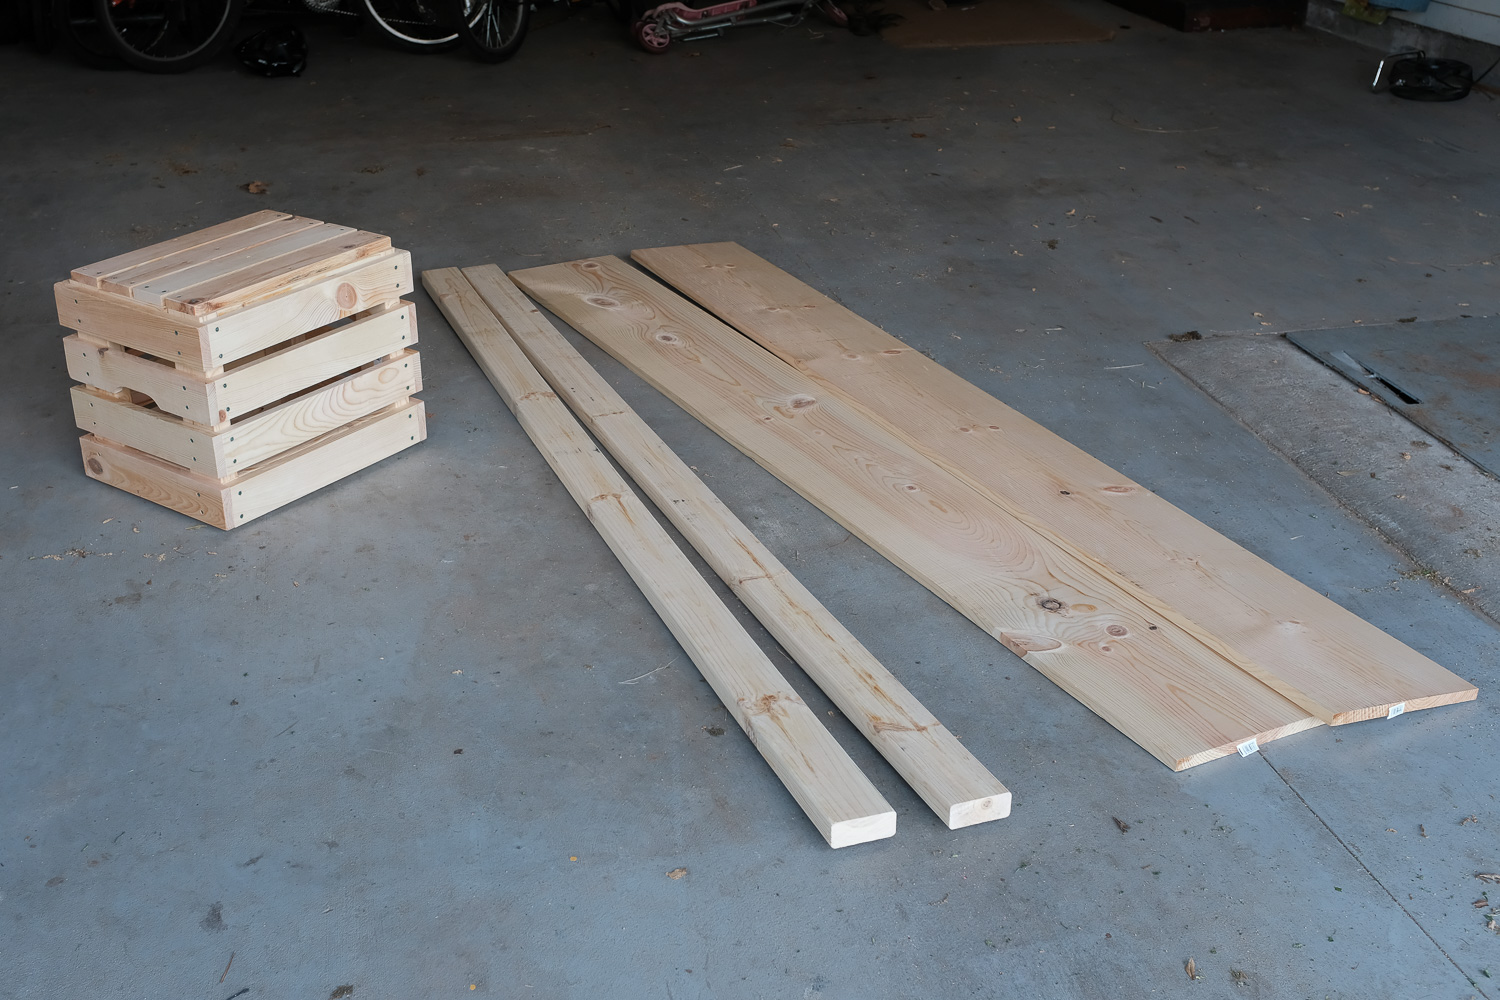 Image: The boards on the right, plus some screws, are all you need to build the bench on the left. I...